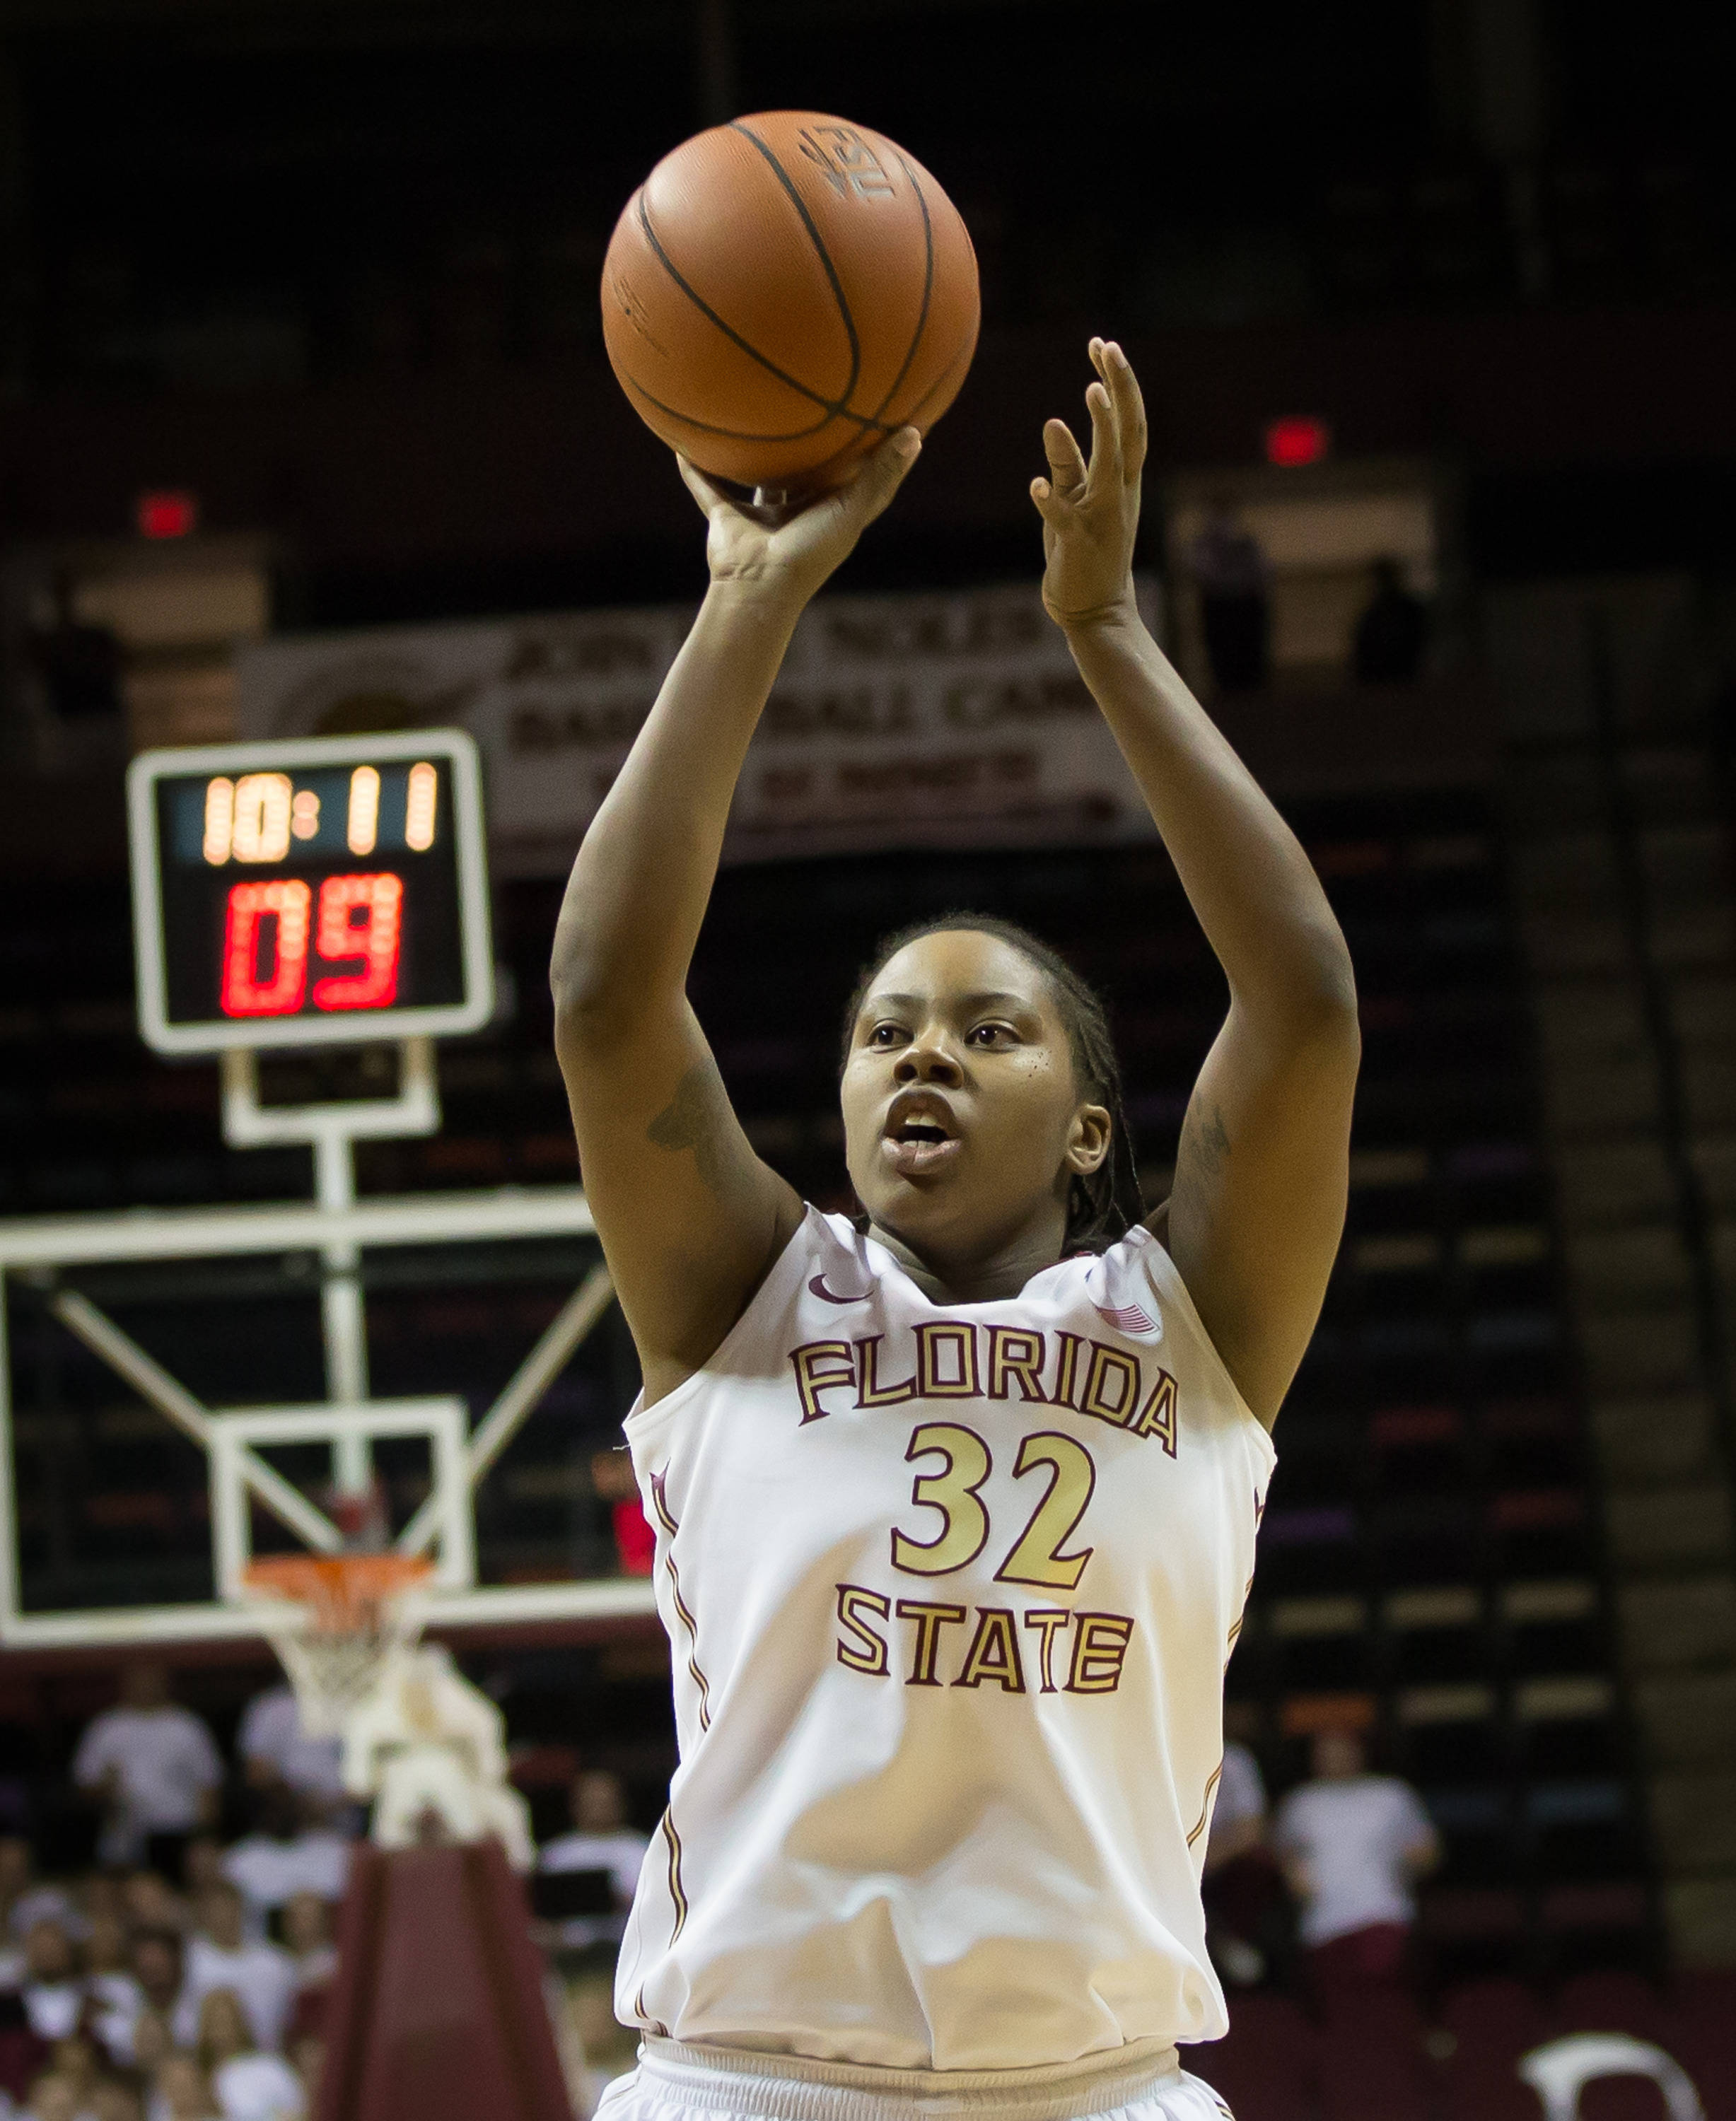 Lauren Coleman (32) contributed 5 points for the victorious Seminoles.